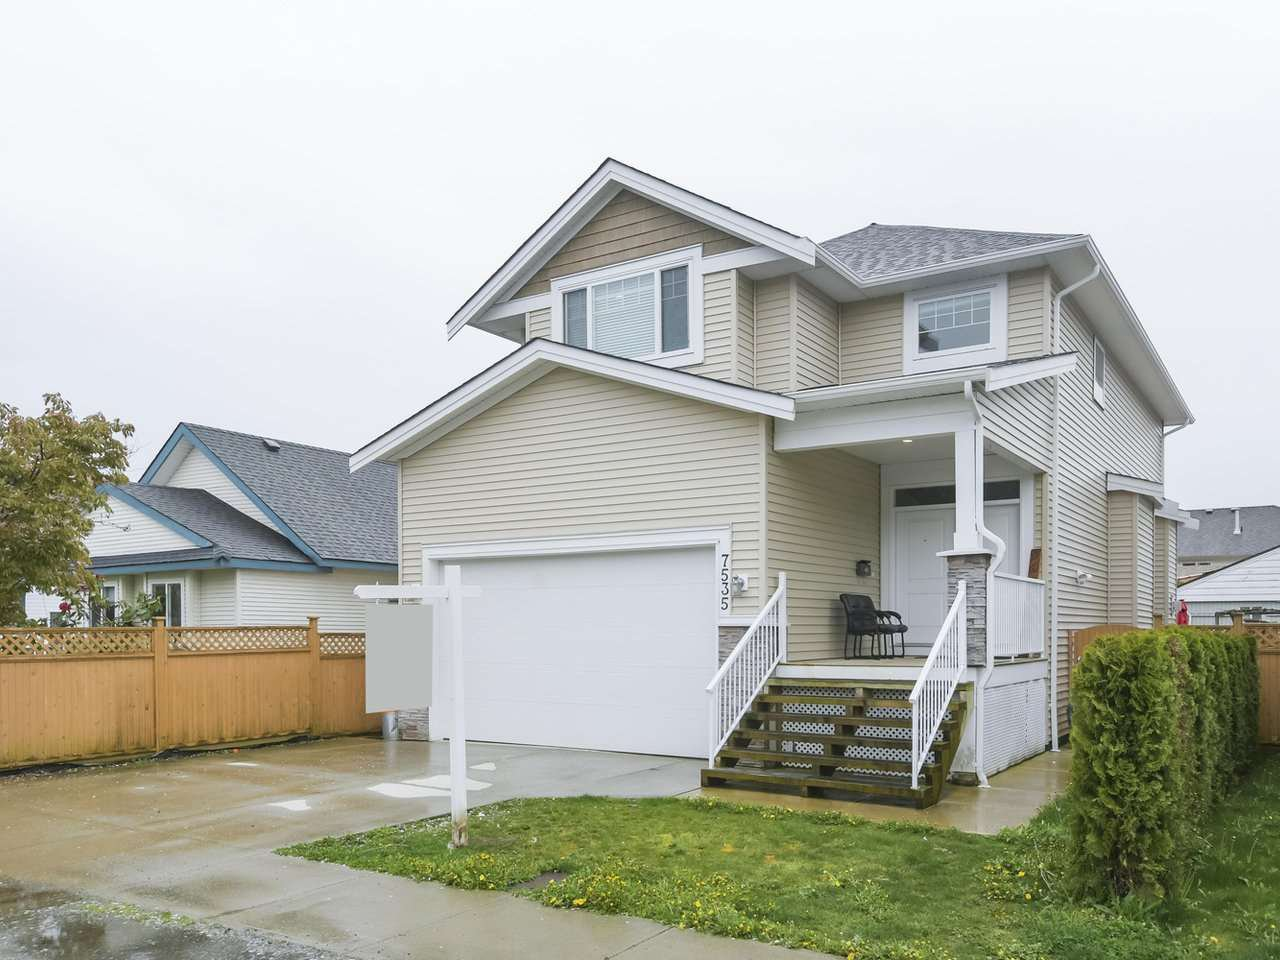 Main Photo: 7535 WELTON Street in Mission: Mission BC House for sale : MLS®# R2484192